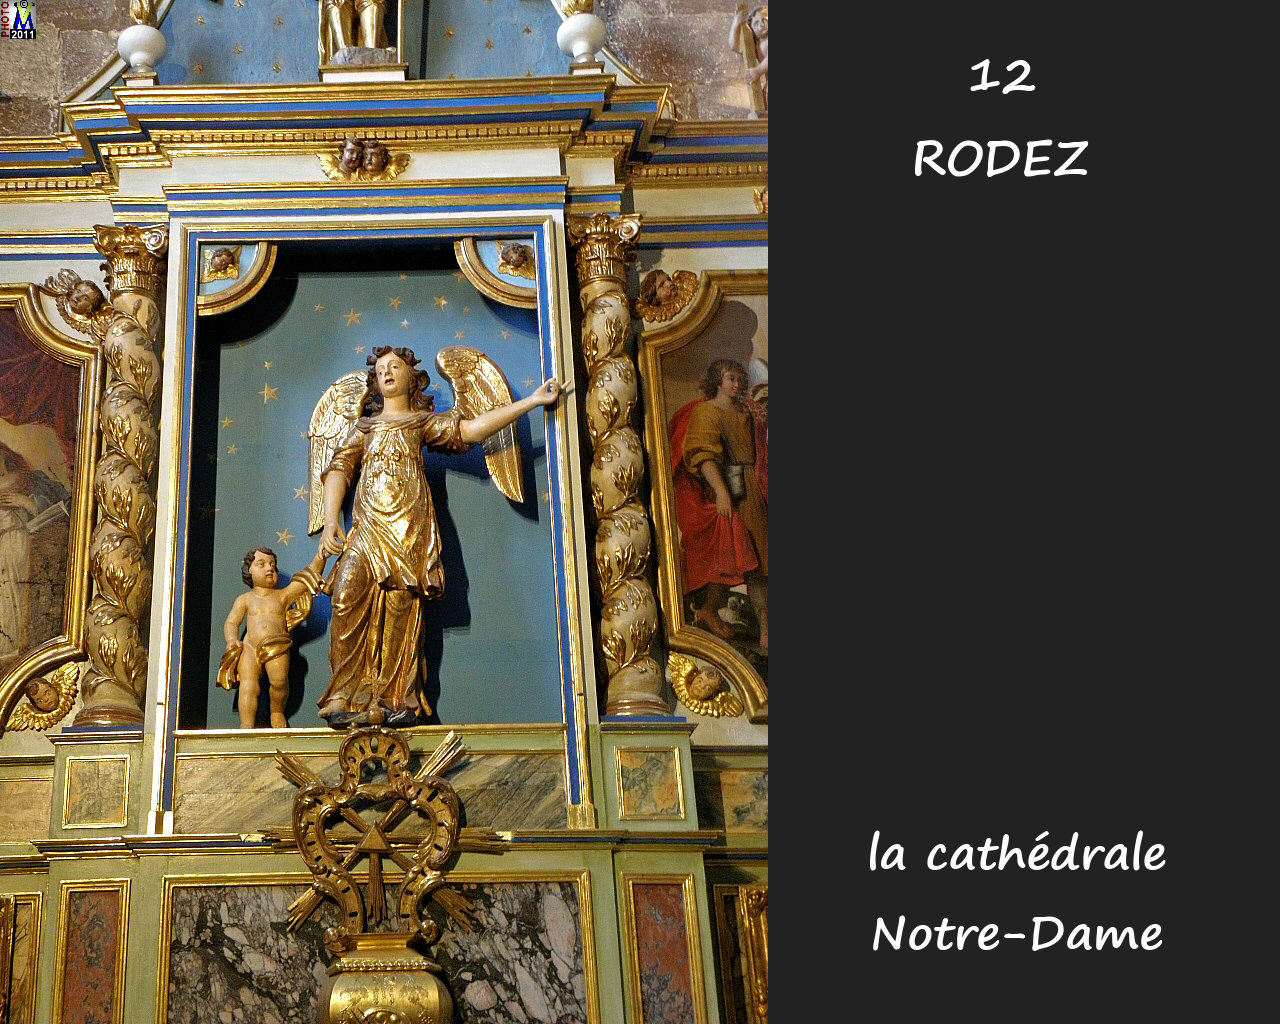 12RODEZ_cathedrale_264.jpg